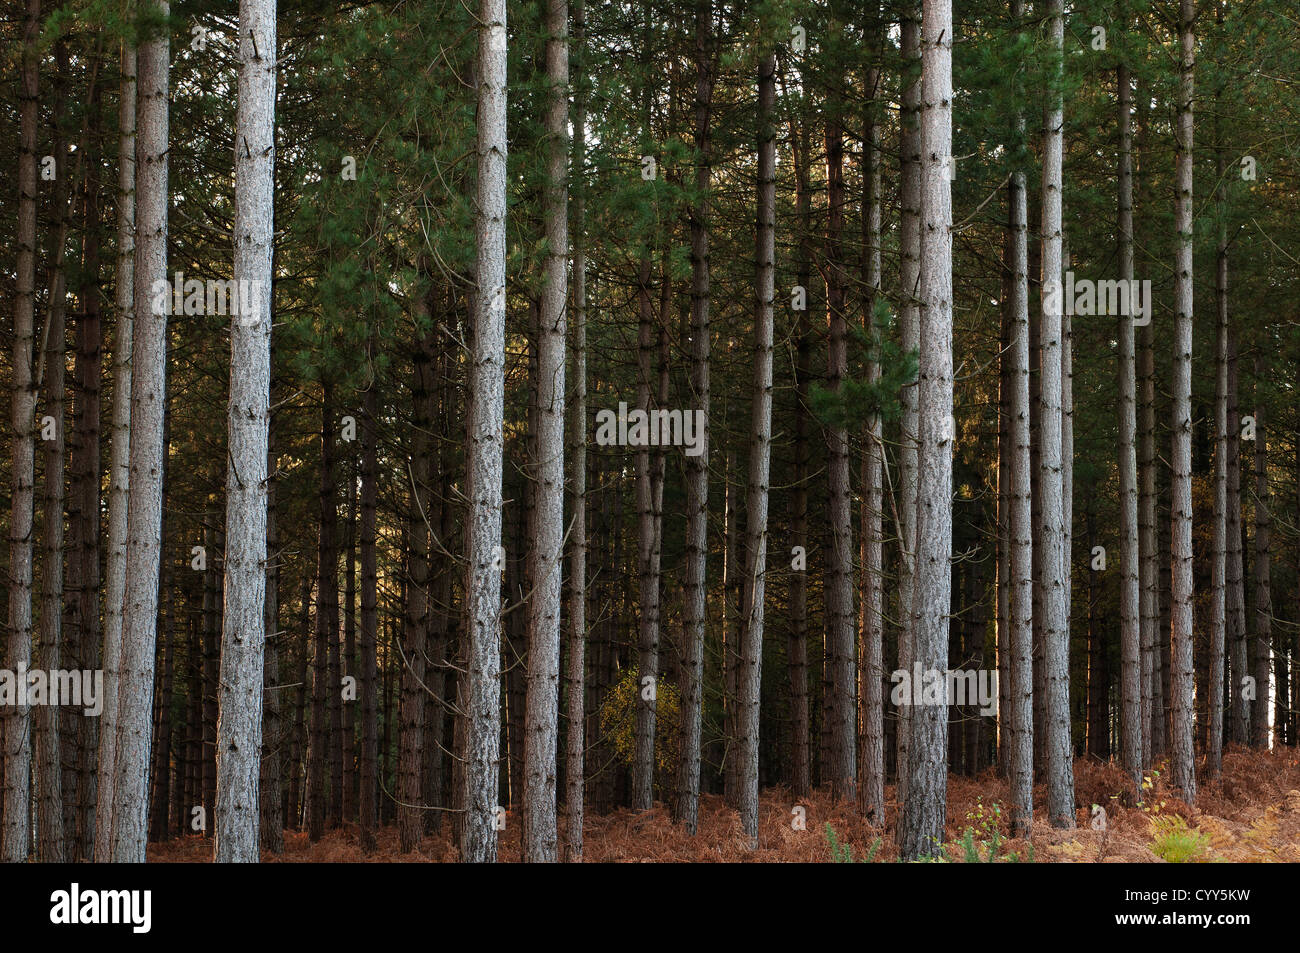 Conifer Woods The New Forest Hampshire England UK - Stock Image